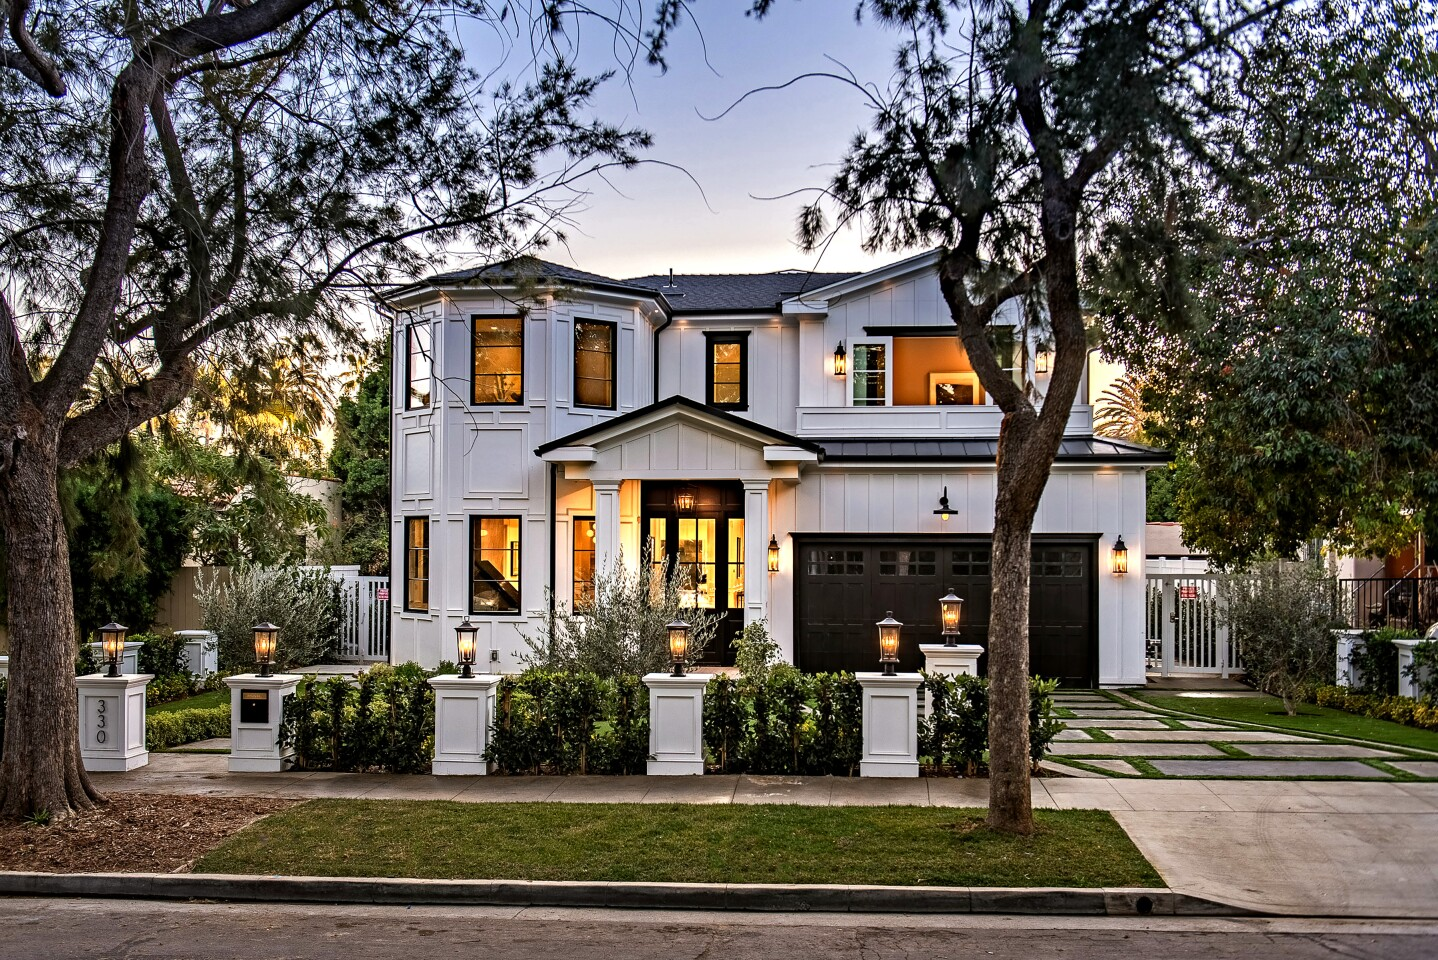 Listed for $8.899 million, the newly built home sits on a tree-lined street in the desirable North of Montana area of Santa Monica. Influenced by East Coast and traditional design styles, the two-story features crisp white walls, detailed wainscoting and multiple fire features. Features of home include an elevator, a media room and a wine cellar. A wet bar fills a side wall in the family room.